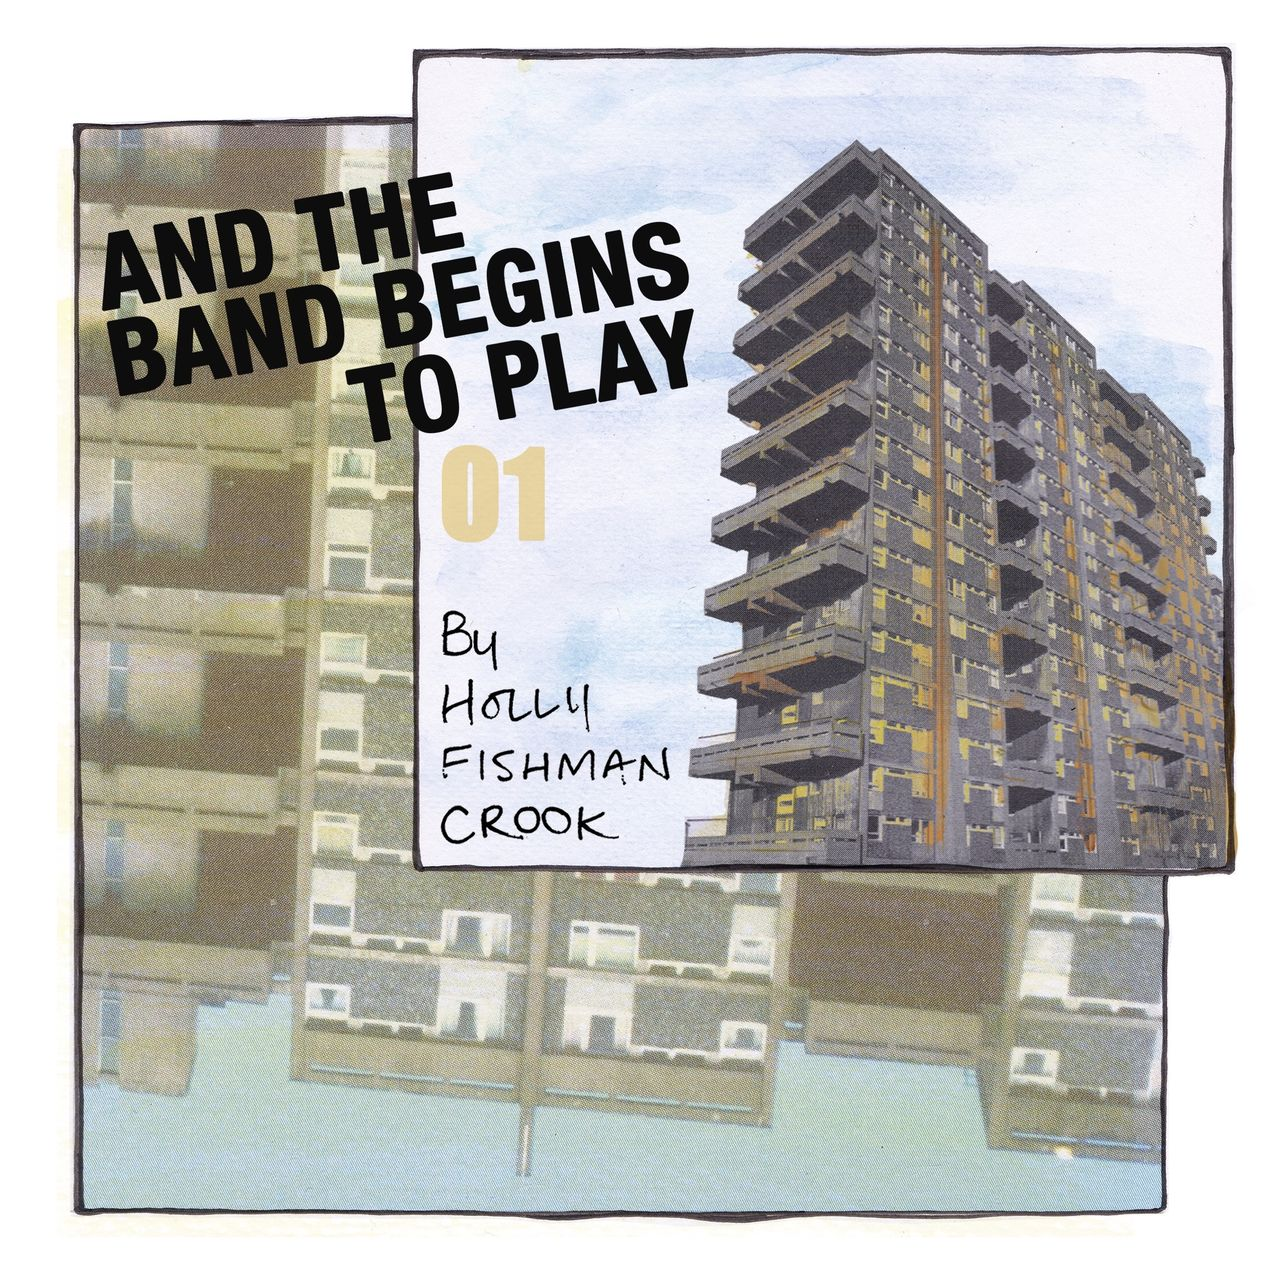 """Webcomic chapter one's front page. Made up of a collage of high rise towers. The words """"And the band begins to play part 1"""" is superimposed over the top."""